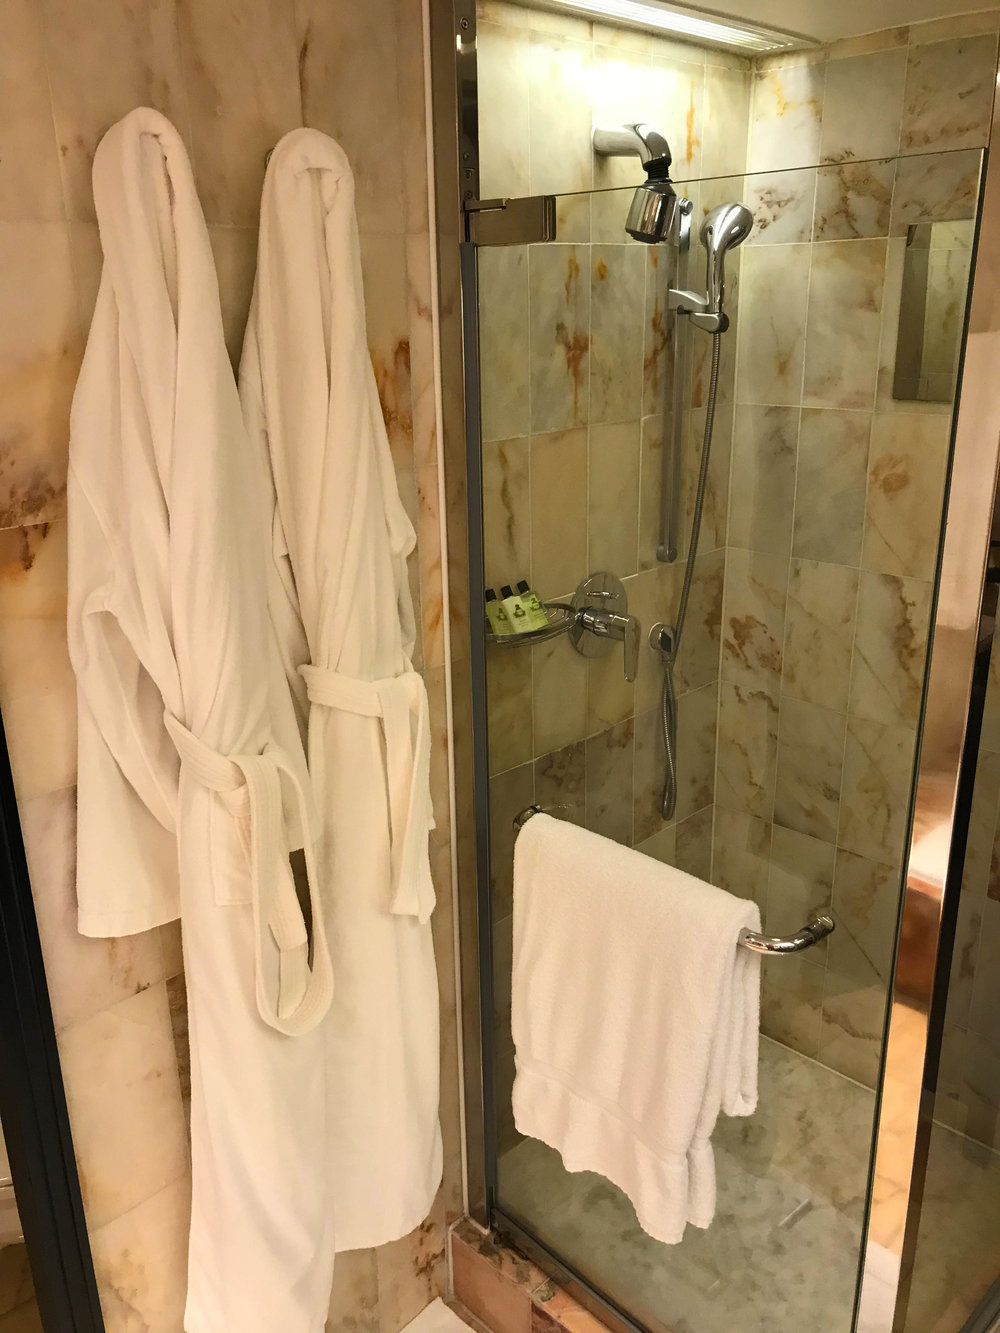 Hong Kong InterContinental Bathroom Robes - Bathroom design